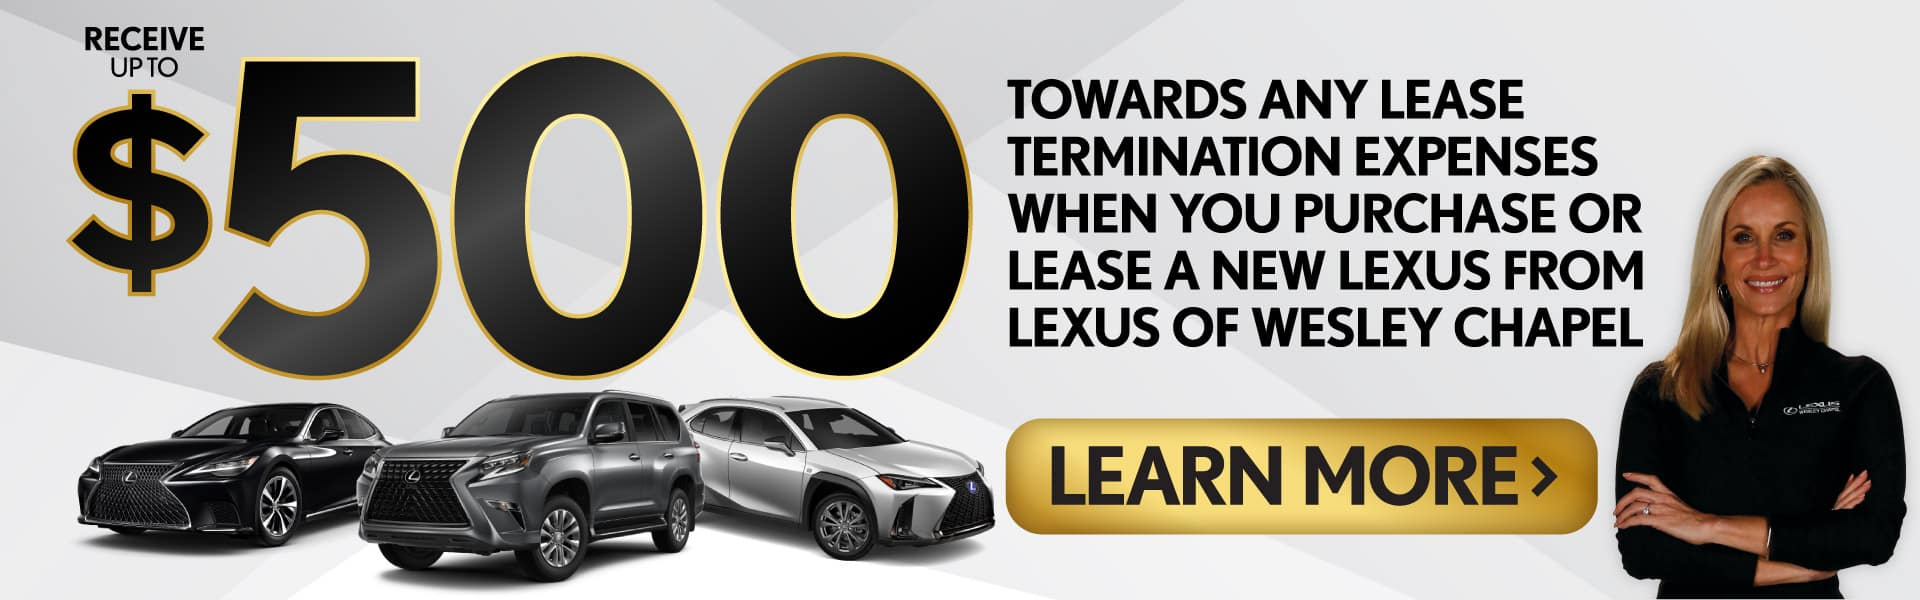 Recieve $500 towards any lease termination   Learn More